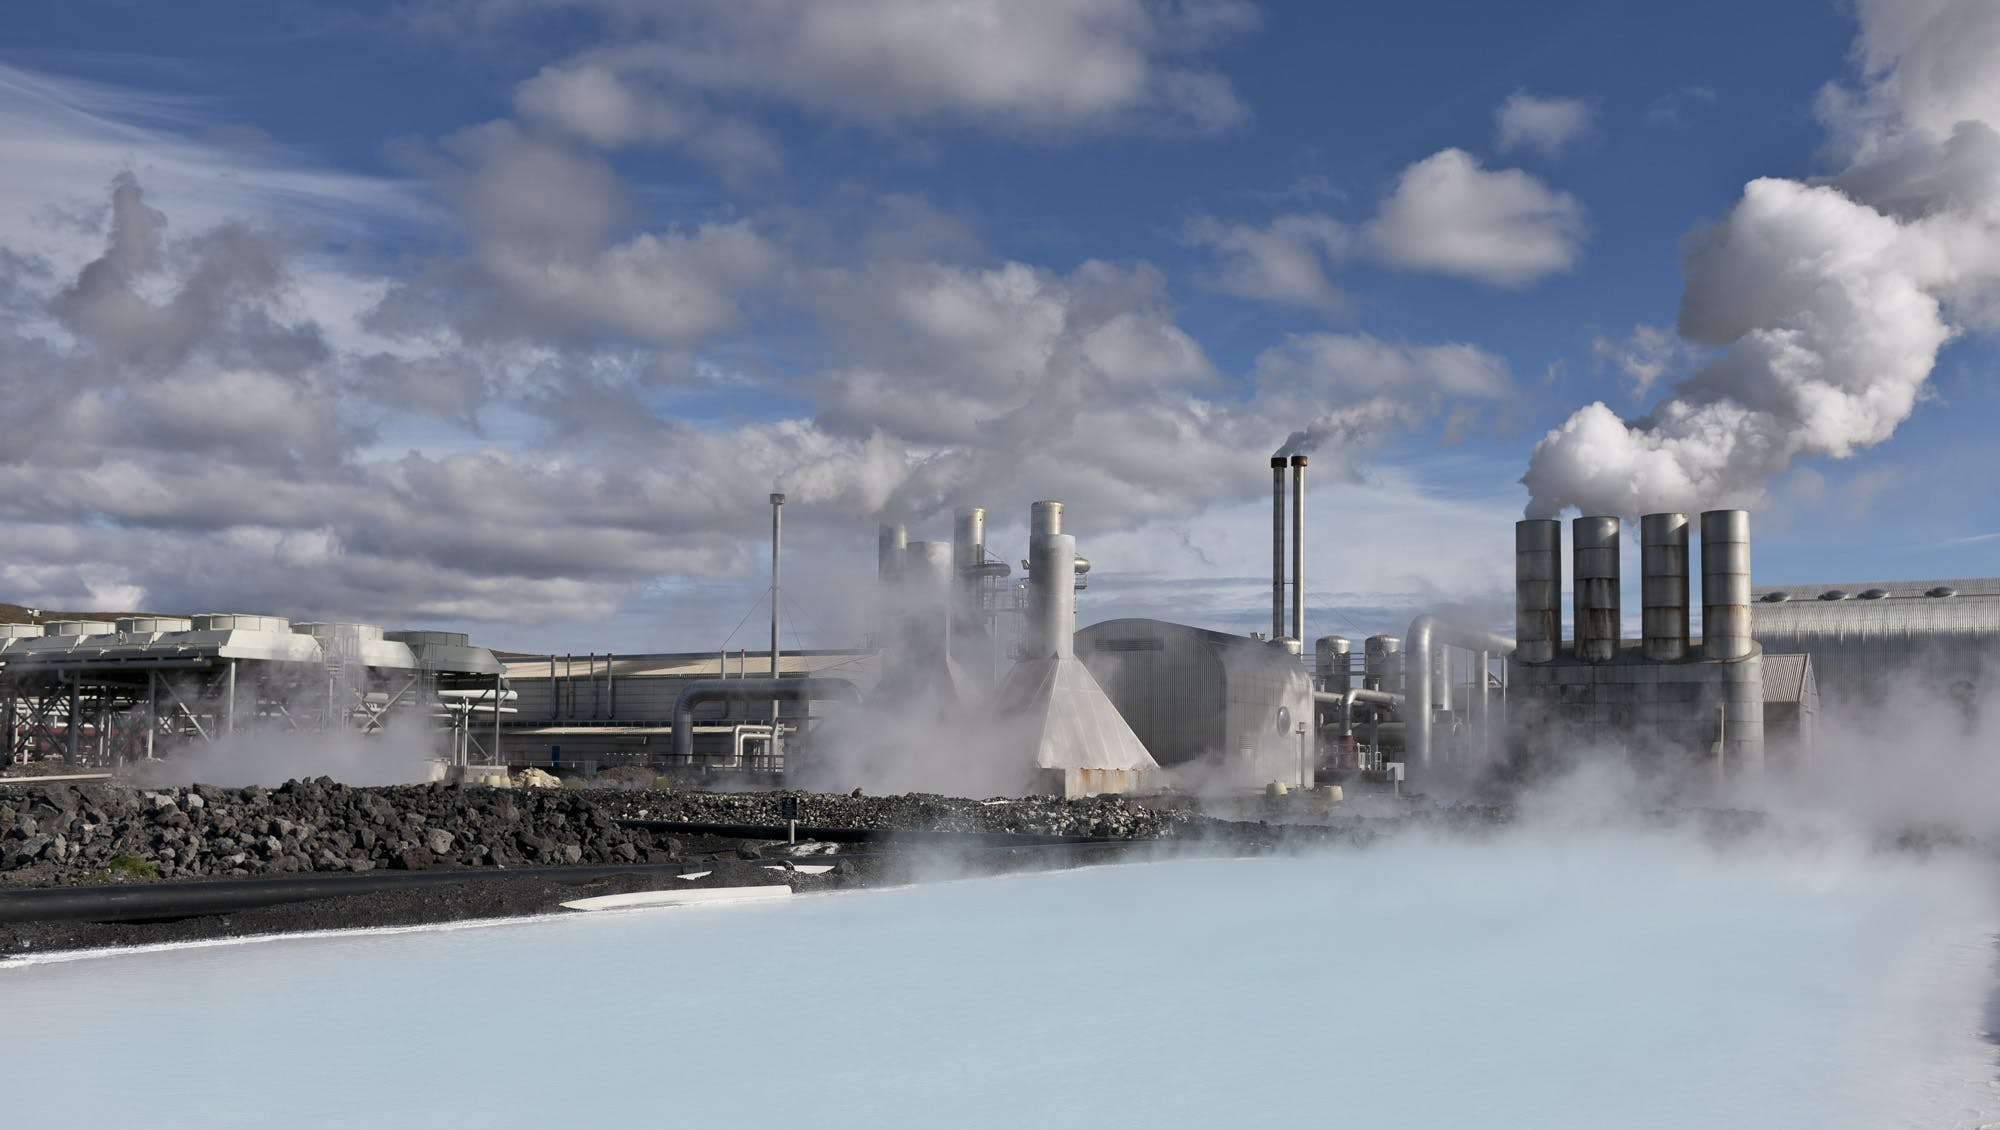 Geothermal water and renewable energy are used in Iceland to grow vegetables year-round in greenhouses.